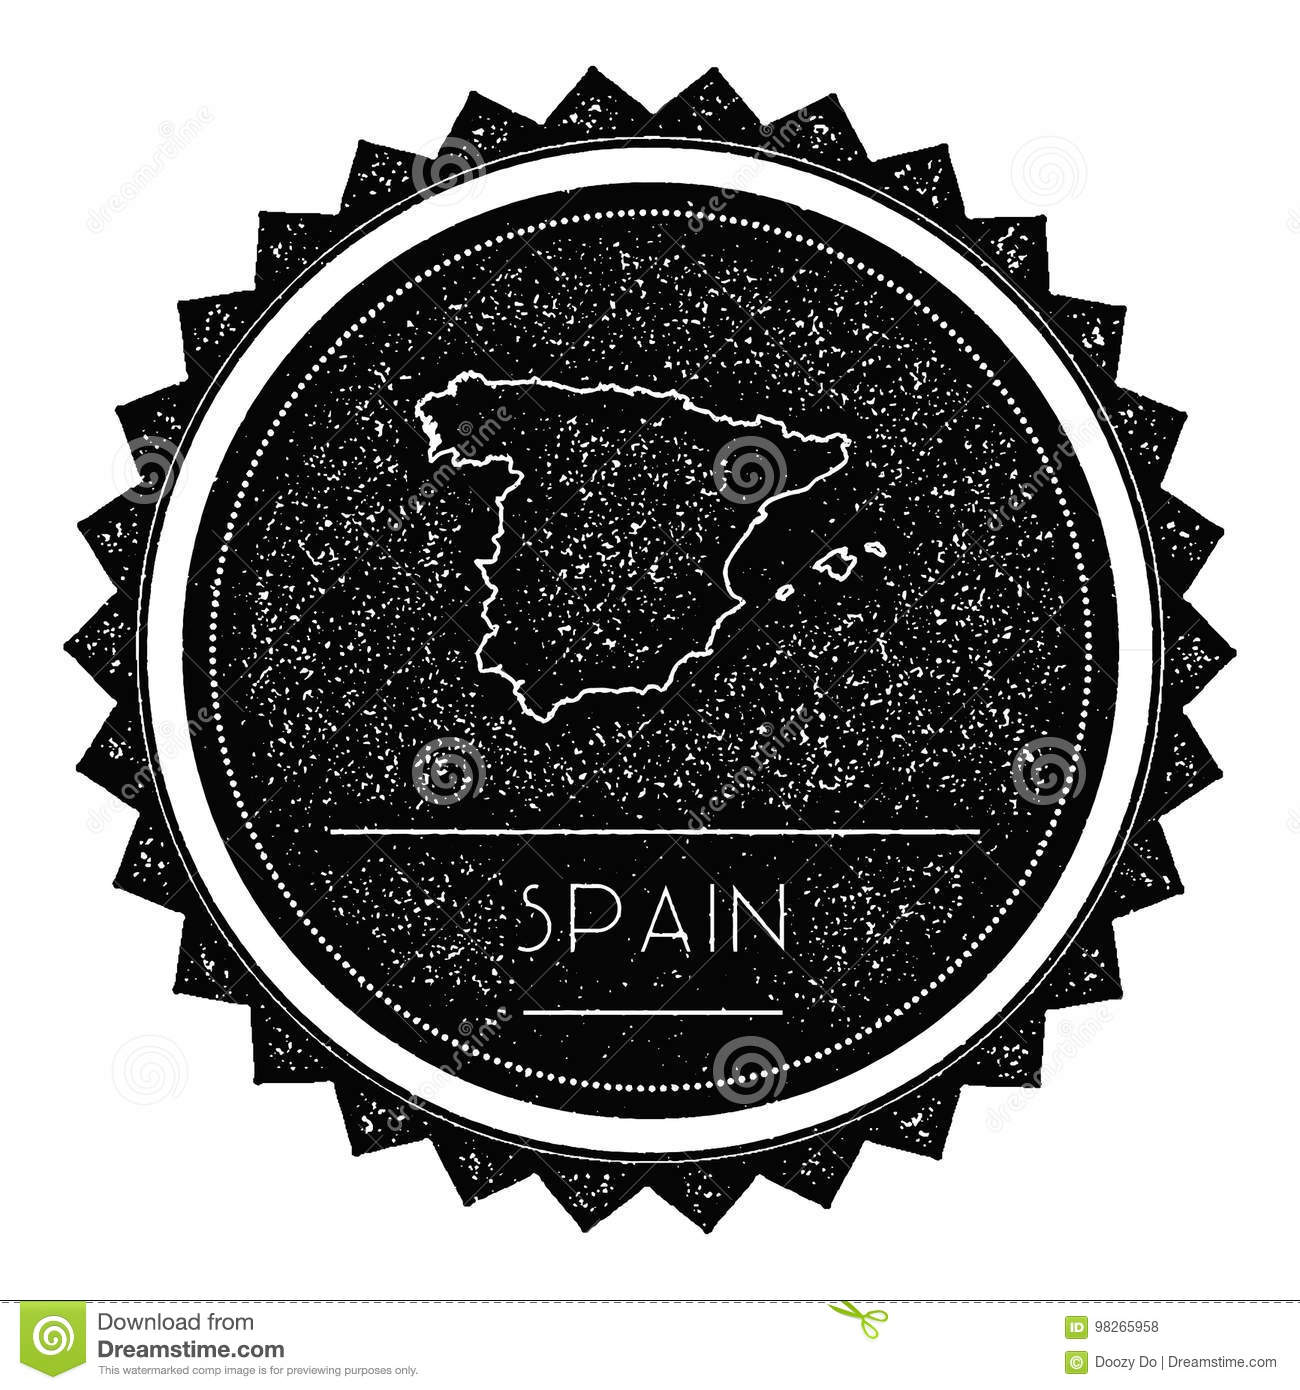 Map Of Spain To Label.Spain Map Label With Retro Vintage Styled Design Stock Vector